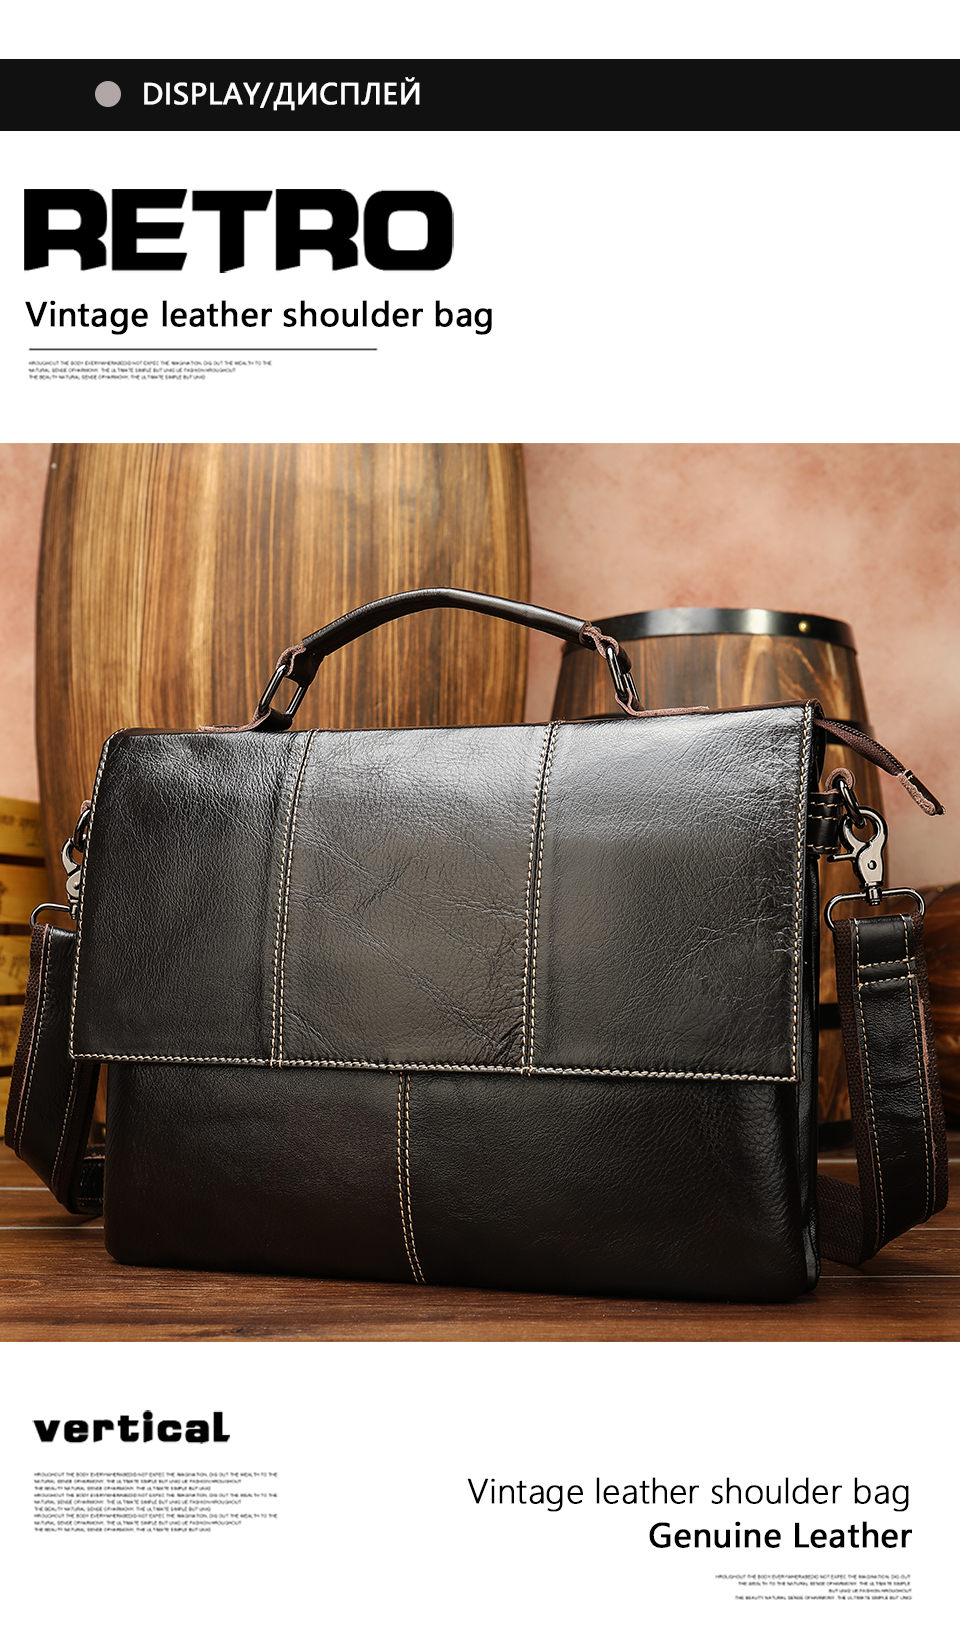 H4e74c18cfb4b4df5a5c0008f8da508afu Bag Men's Briefcase Genuine Leather Office Bags for Men Leather Laptop Bags Shoulder/Messenger Bag Business Briefcase Male 7909